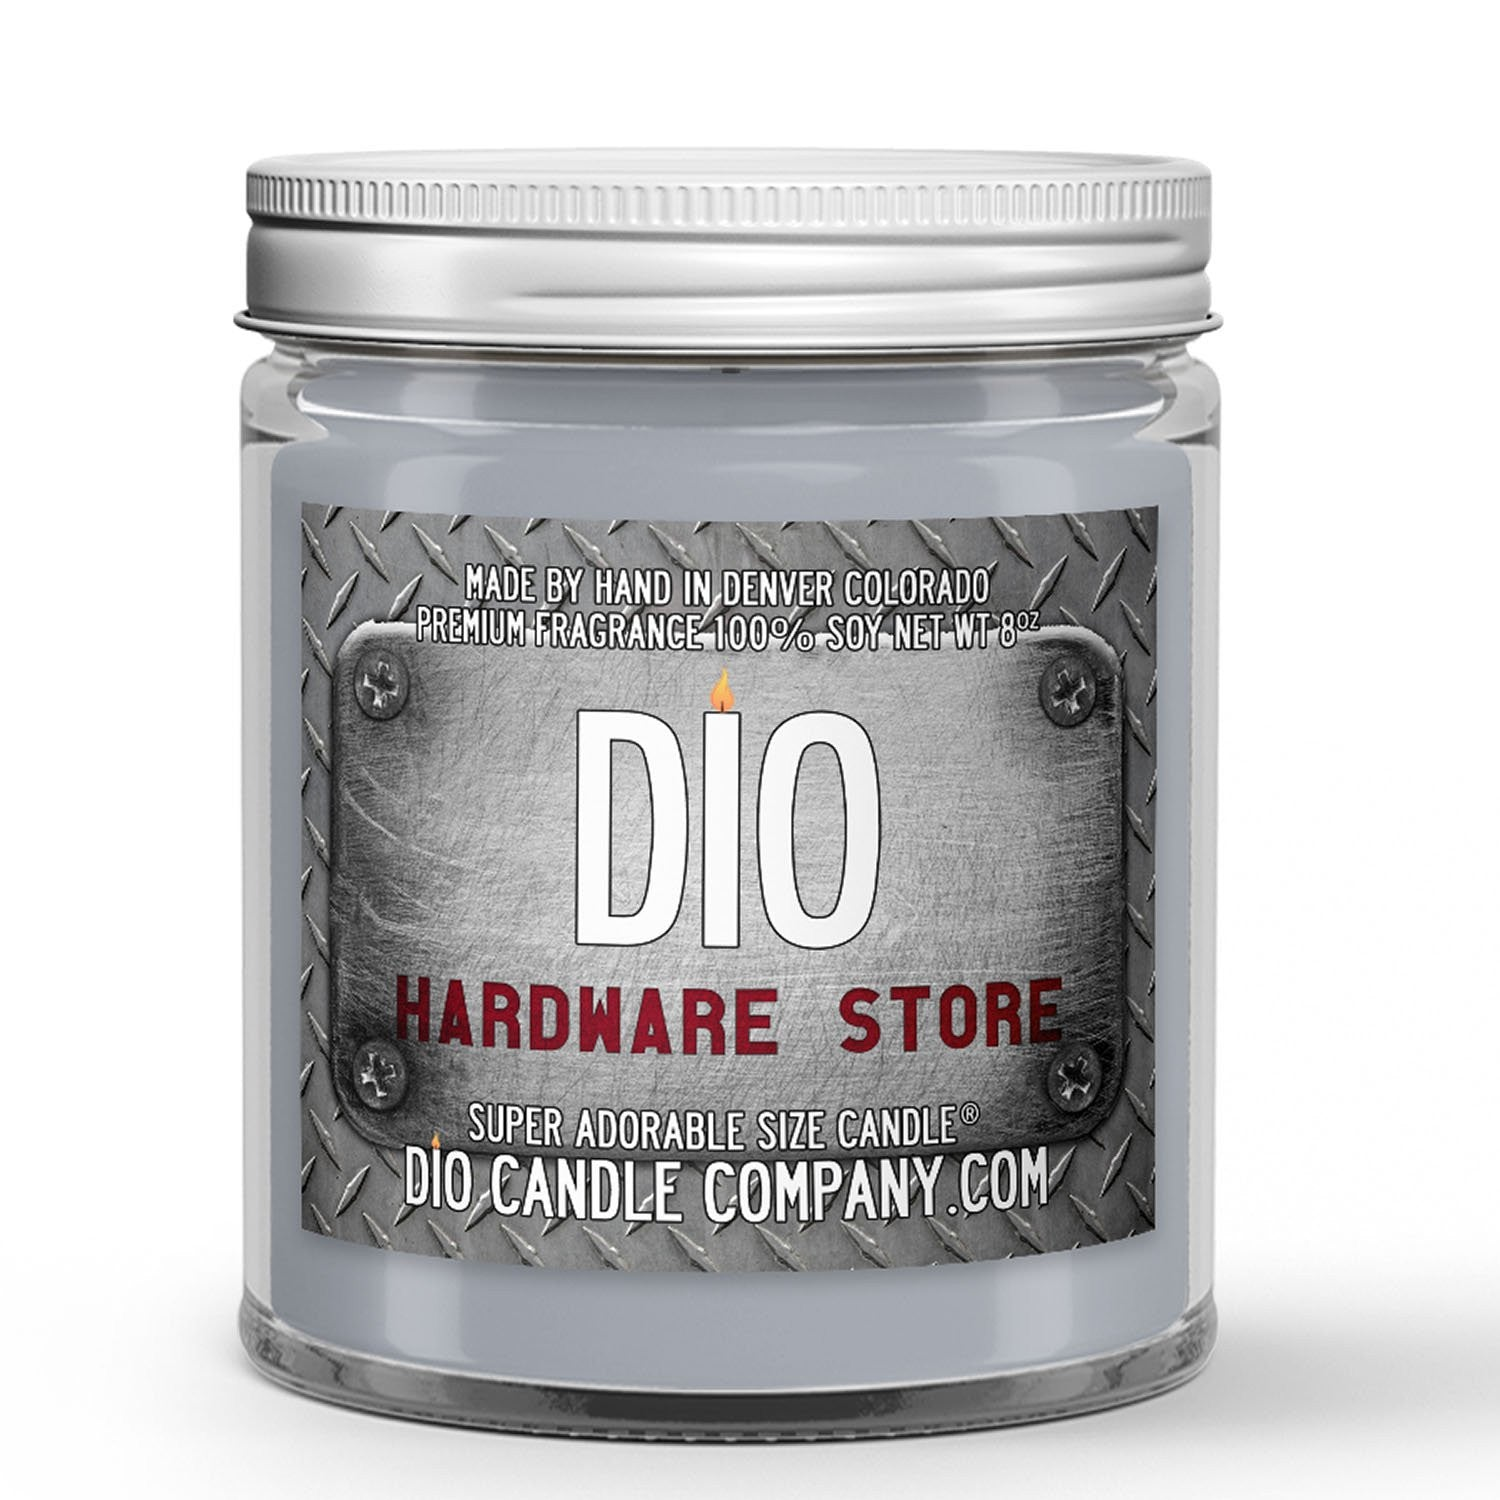 Hardware Store Candle - Paint Mixers - Wooden Dowels - Dusty Metal Shelves - 8oz Super Adorable Size Candle® - Dio Candle Company